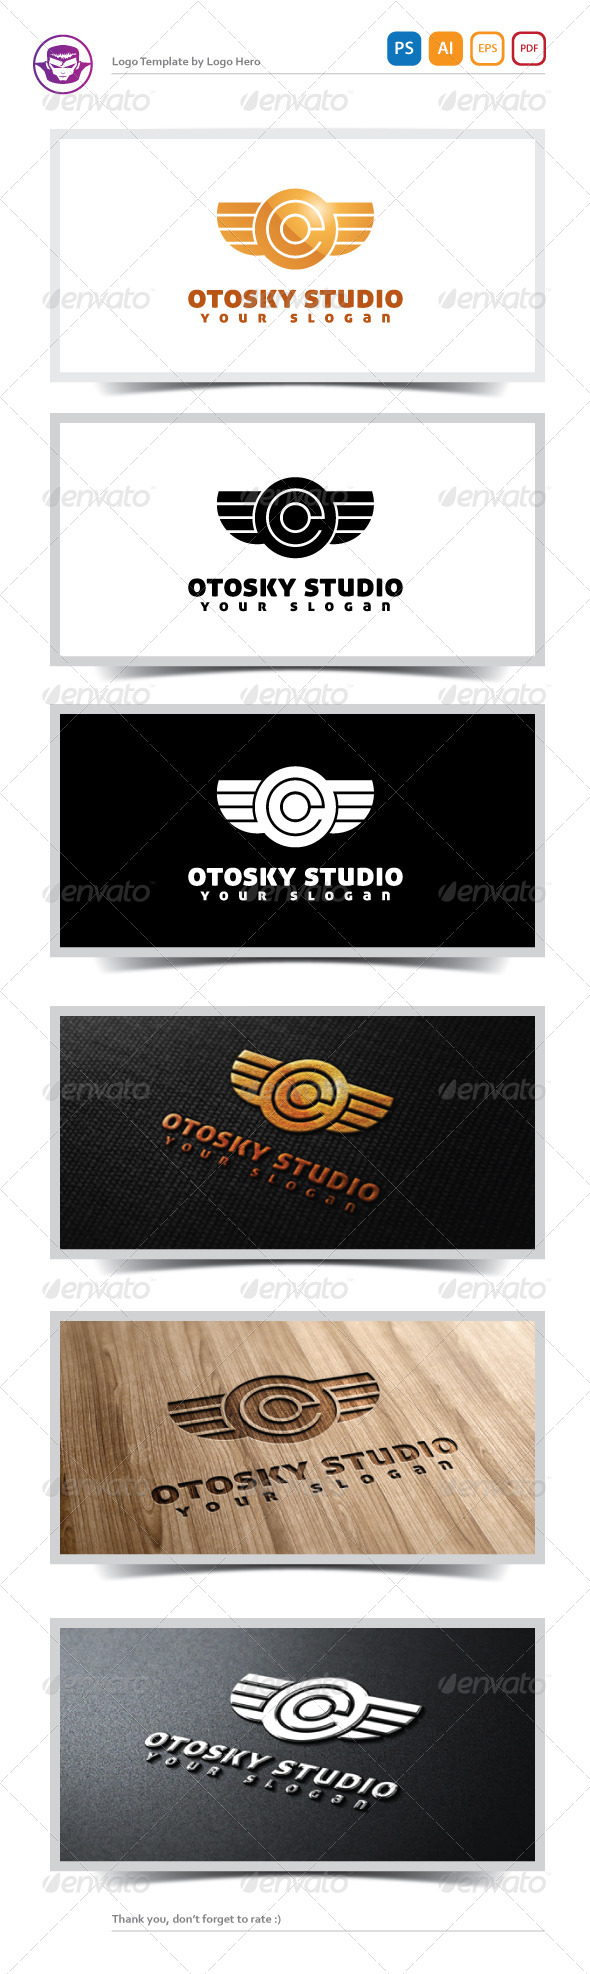 GraphicRiver Otosky Studio Logo Template 5167083